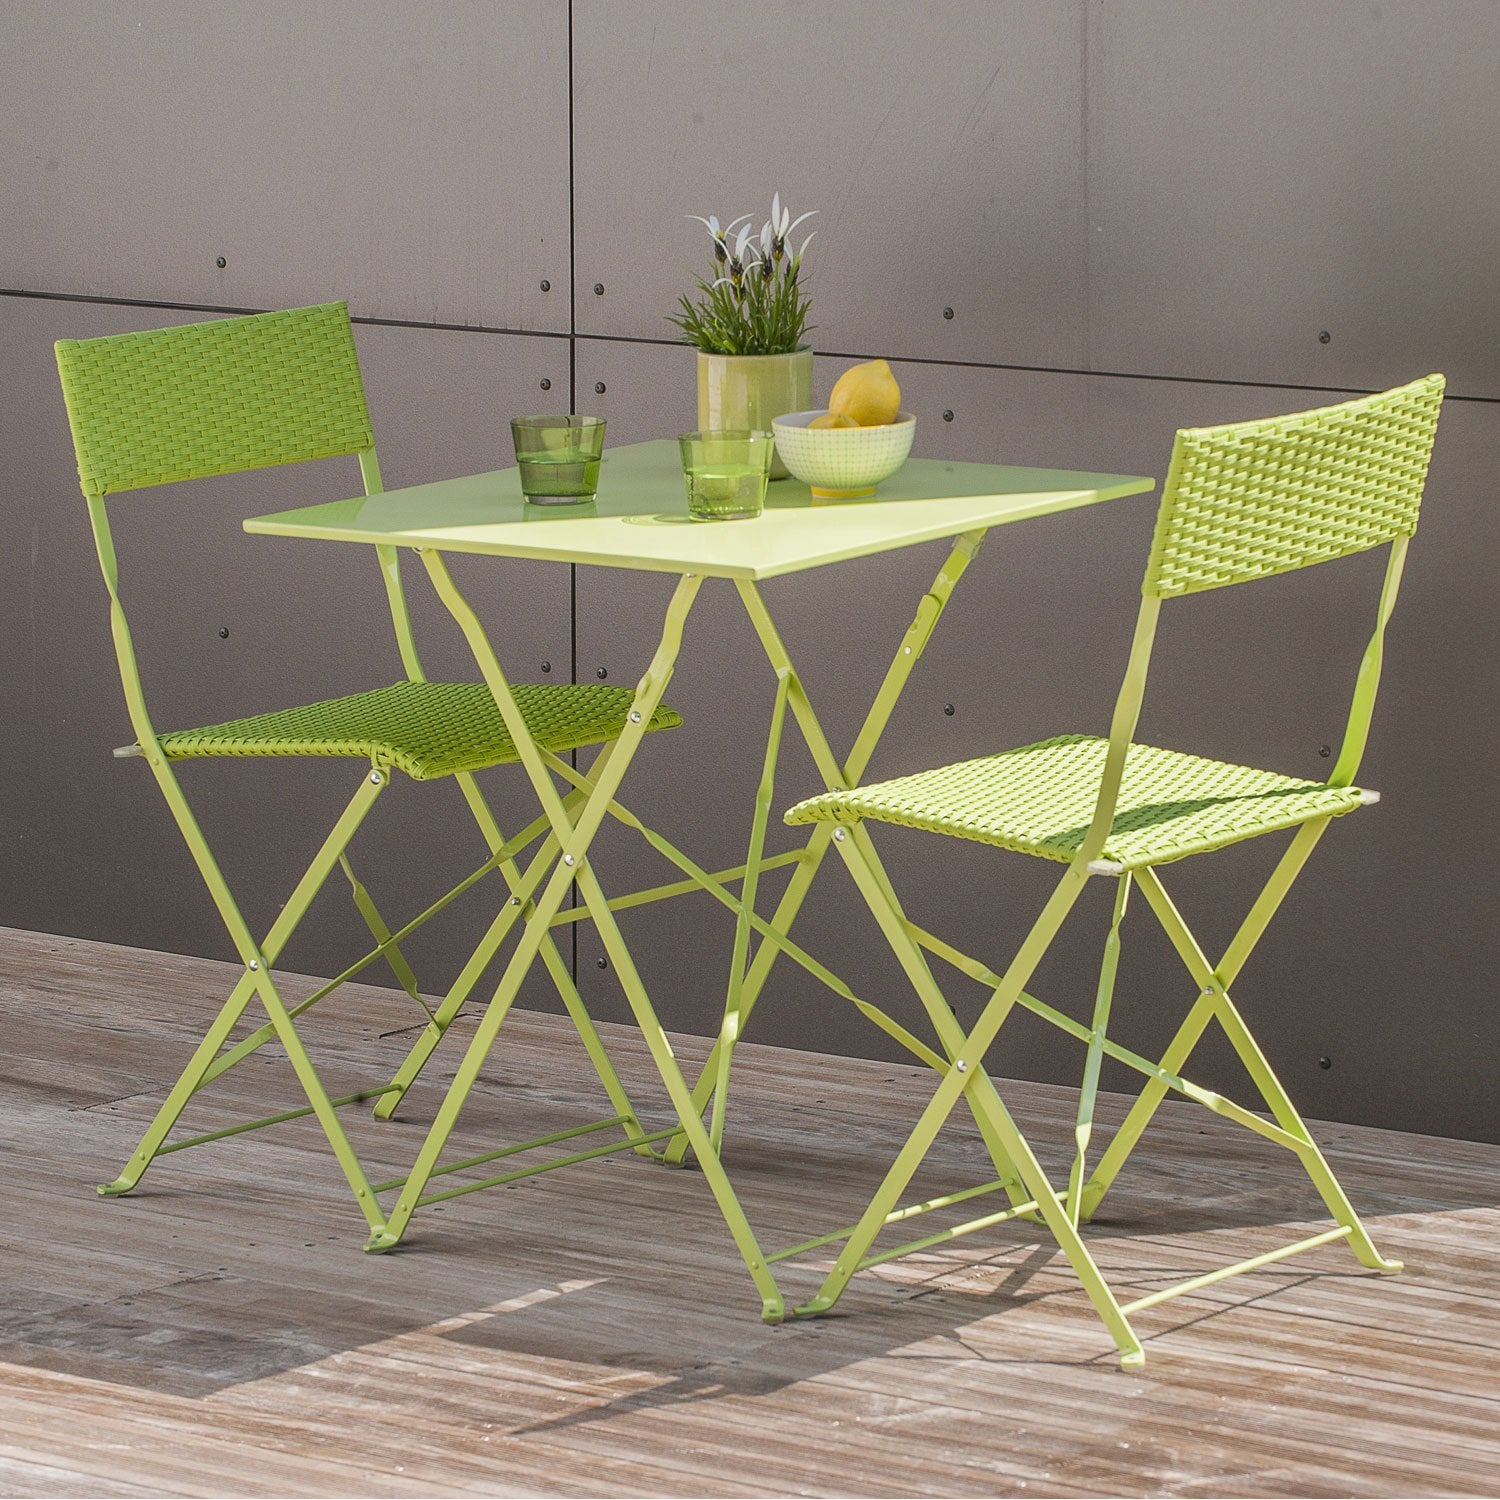 Salon de jardin mezzo acier vert 1 table gueridon 2 for Table avec chaise encastrable conforama